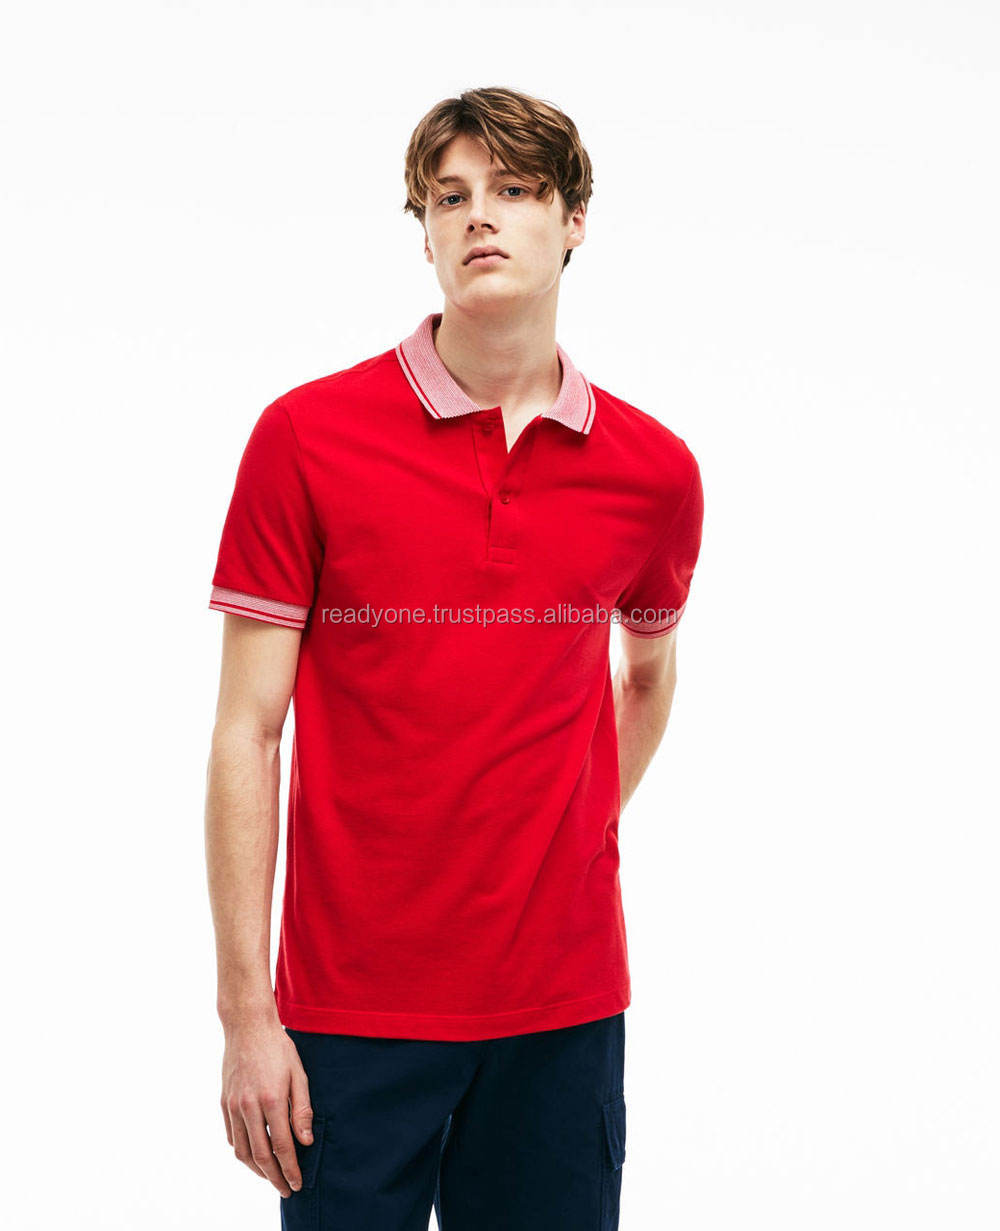 Wholesale 100% cotton red short sleeve polo t shirt cheap custom printed dye sublimation moisture quick dry red